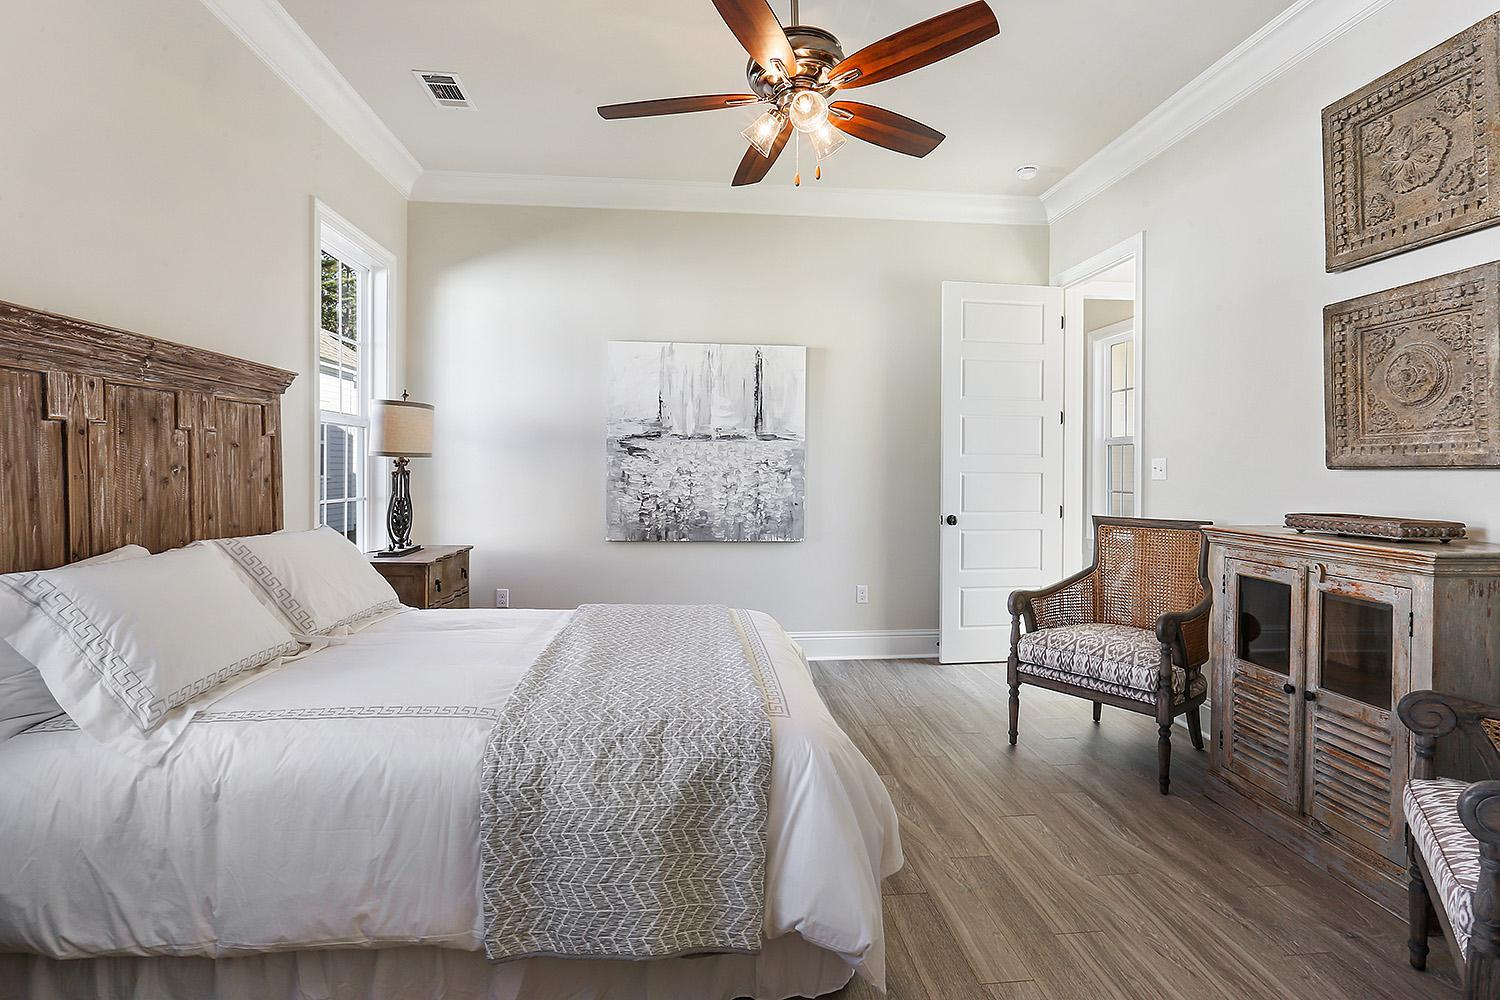 Bedroom featured in the Tezcuco C By Highland Homes in New Orleans, LA